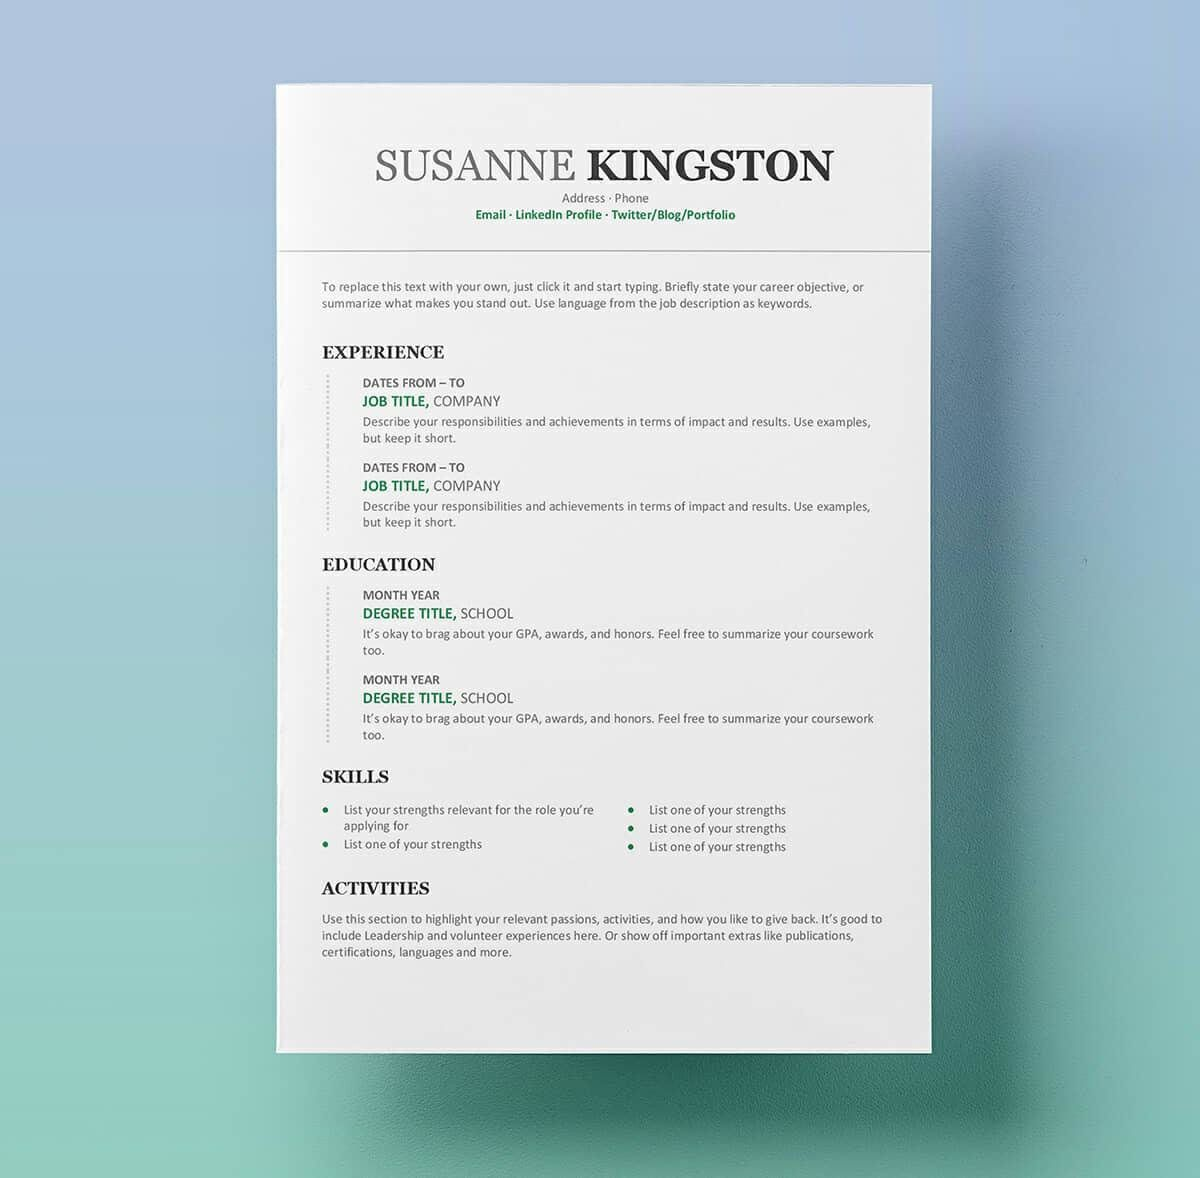 010 Amazing Professional Cv Template Free Word Concept  Uk Best Resume DownloadFull